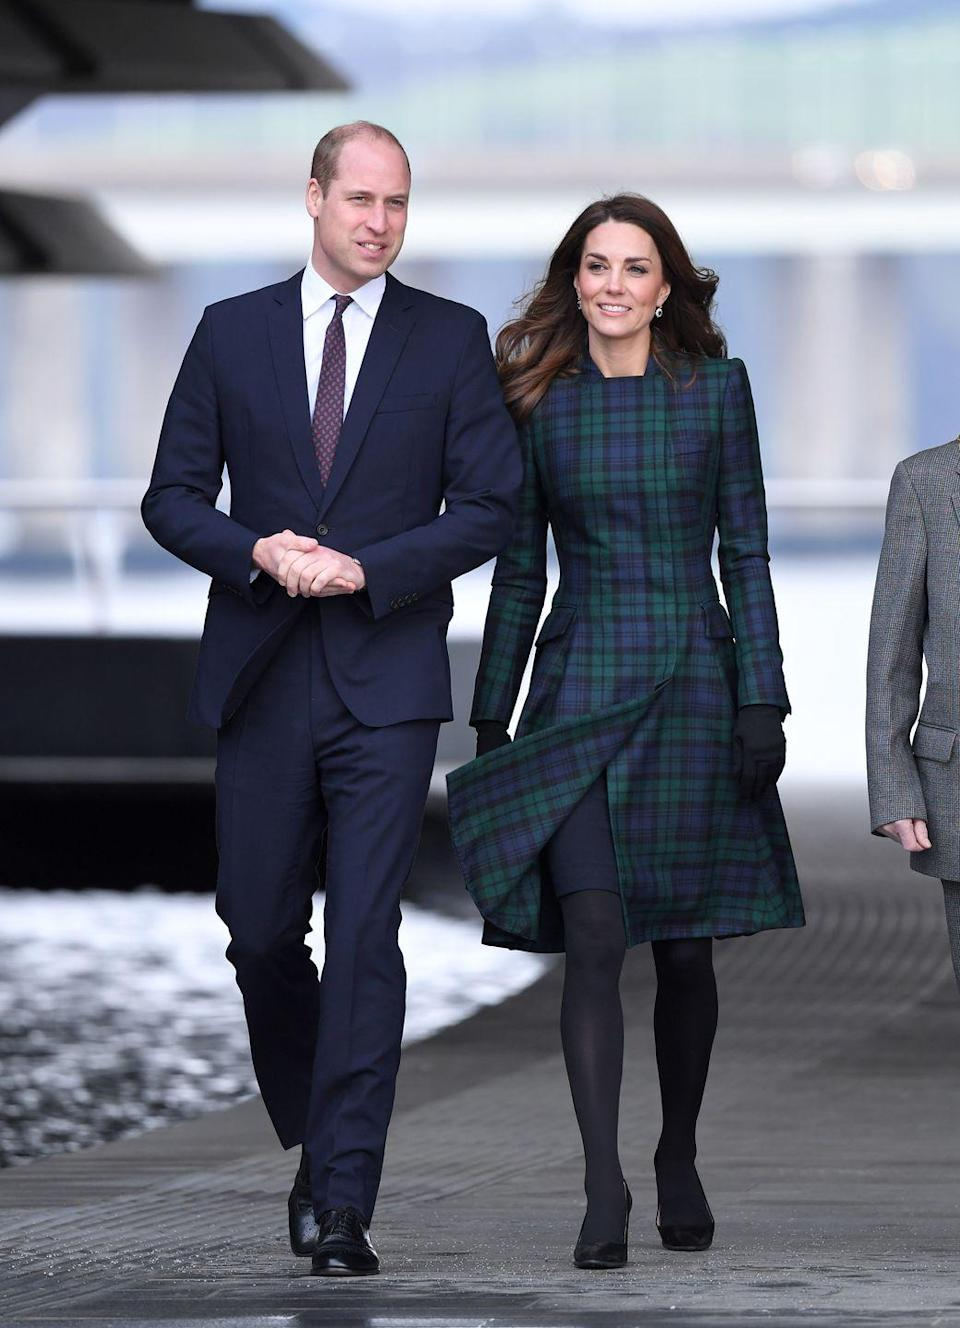 """<p>Here she is in it again<a href=""""https://www.townandcountrymag.com/style/fashion-trends/a26063653/kate-middleton-va-dundee-scotland-plaid-coat-dress-photos/"""" rel=""""nofollow noopener"""" target=""""_blank"""" data-ylk=""""slk:at the opening of the V&A Dundee in Scotland."""" class=""""link rapid-noclick-resp""""> at the opening of the V&A Dundee in Scotland.</a></p>"""